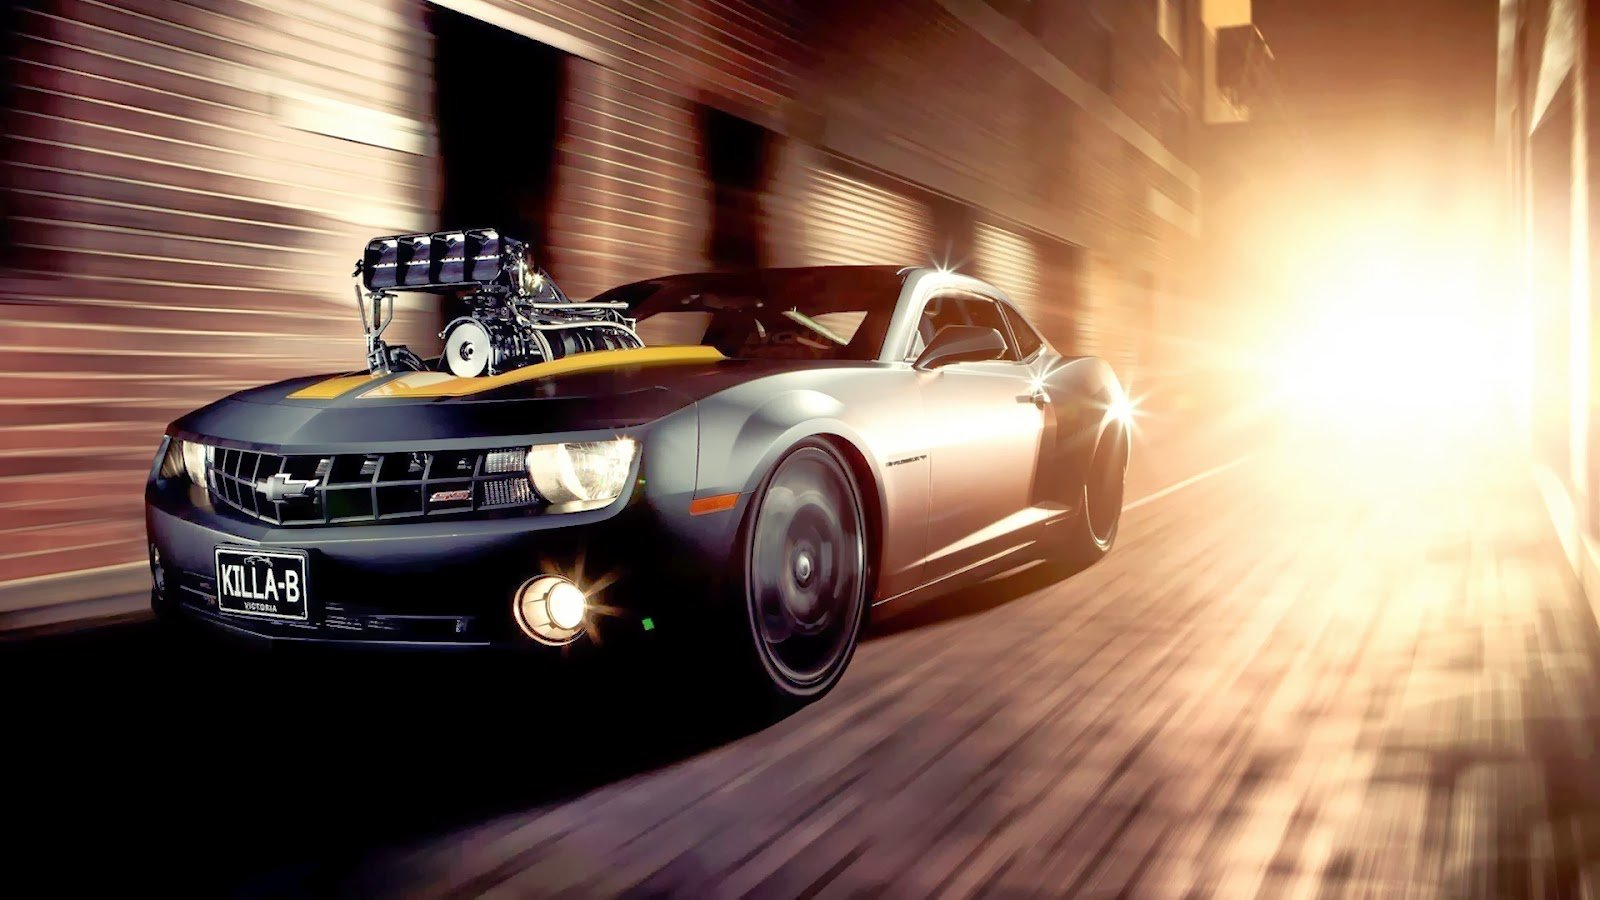 Latest New Mind Blowing Car Wallpapers Allfreshwallpaper Free Download